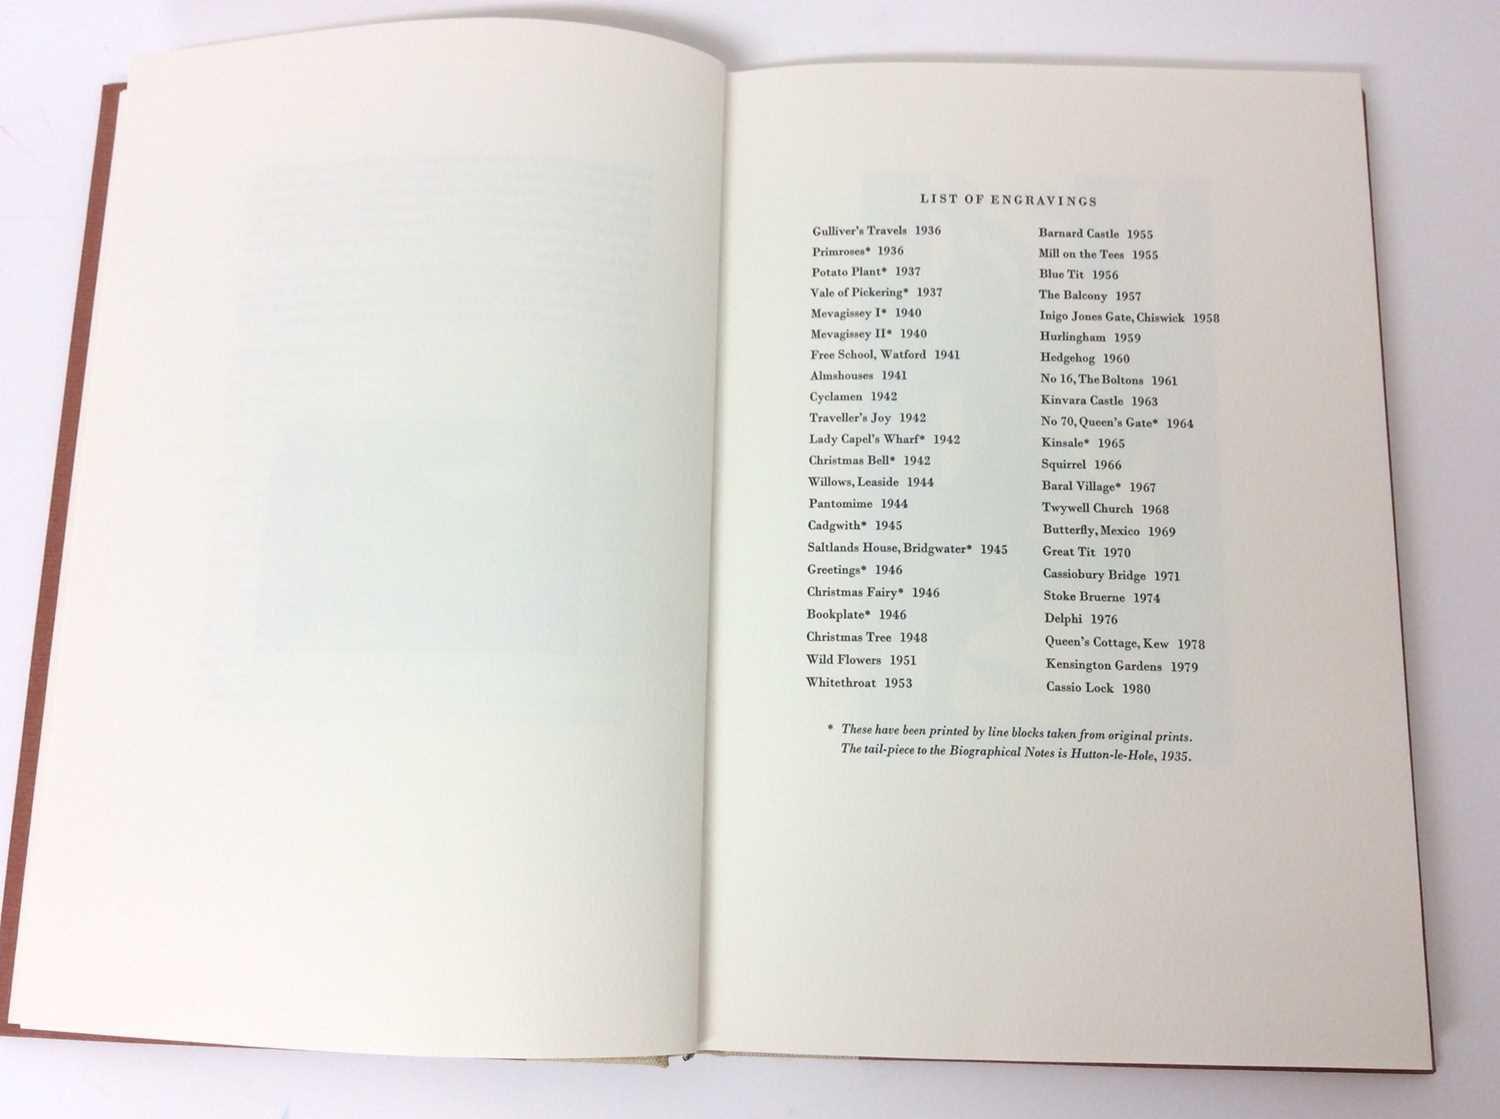 Mary Skempton - The Wood Engravings of Mary Skempton limited edition of 150 - Image 3 of 7